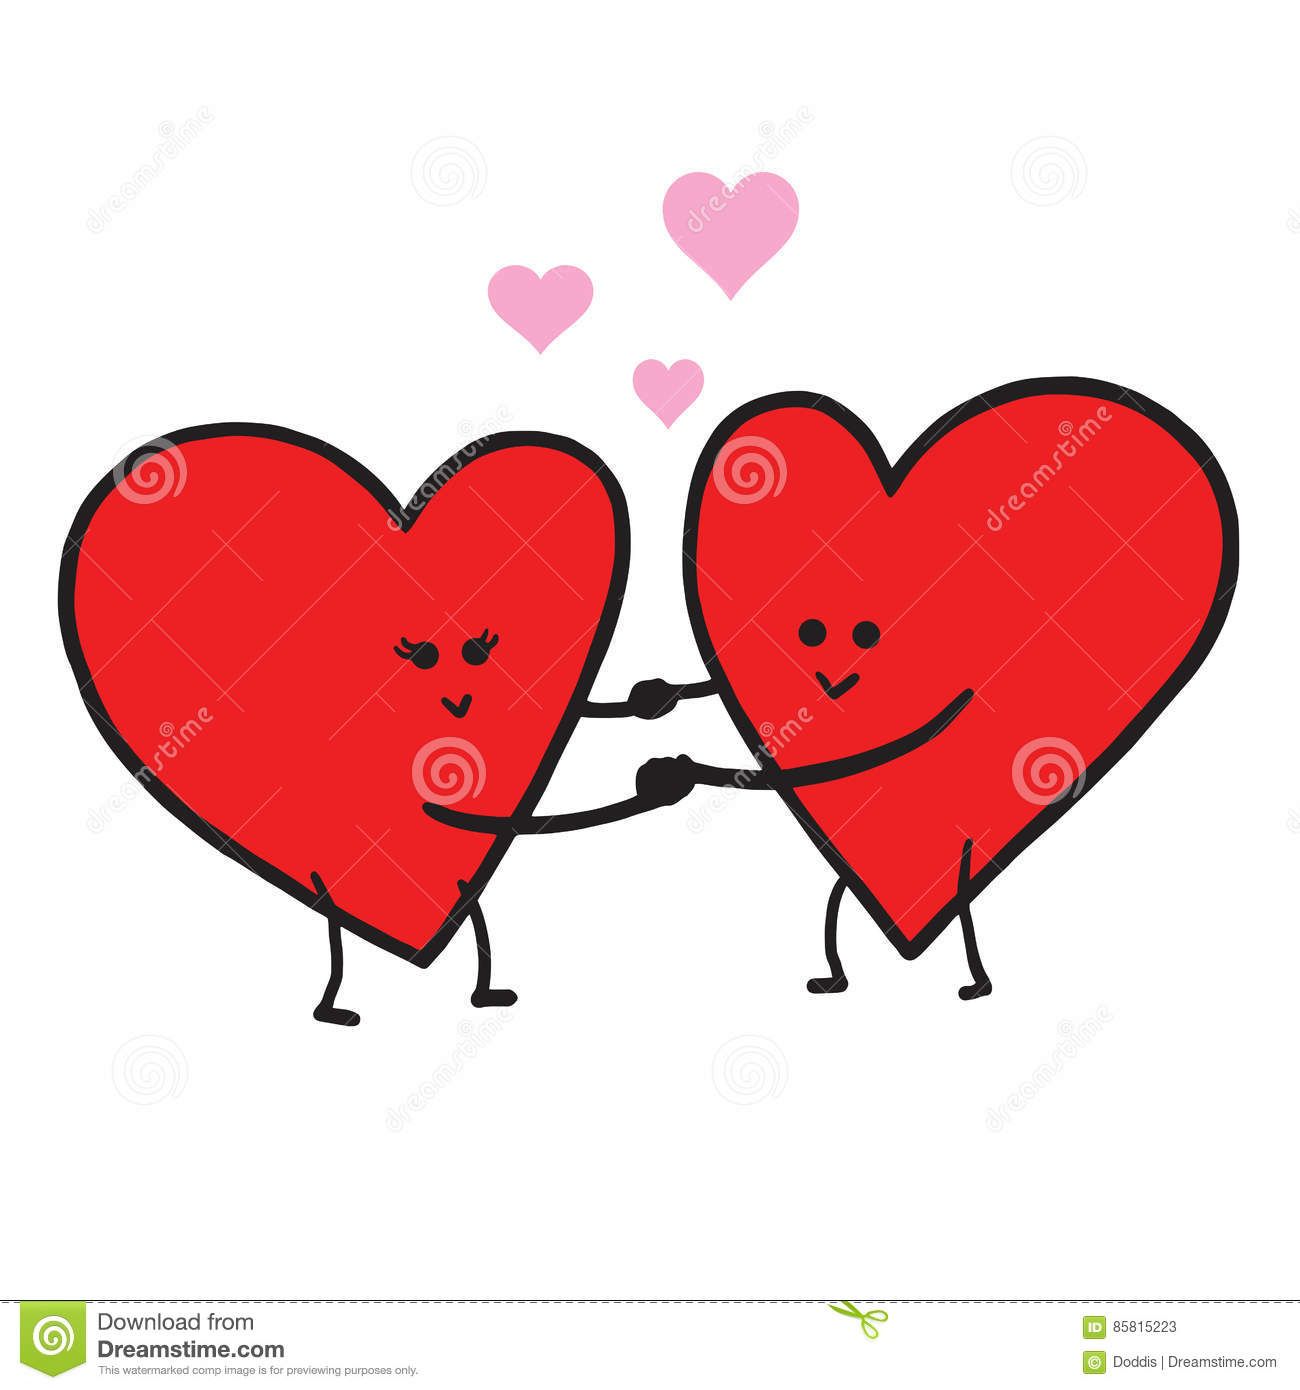 Cute Love Cartoon In Love Vector Illustration. Valentine Greeting.